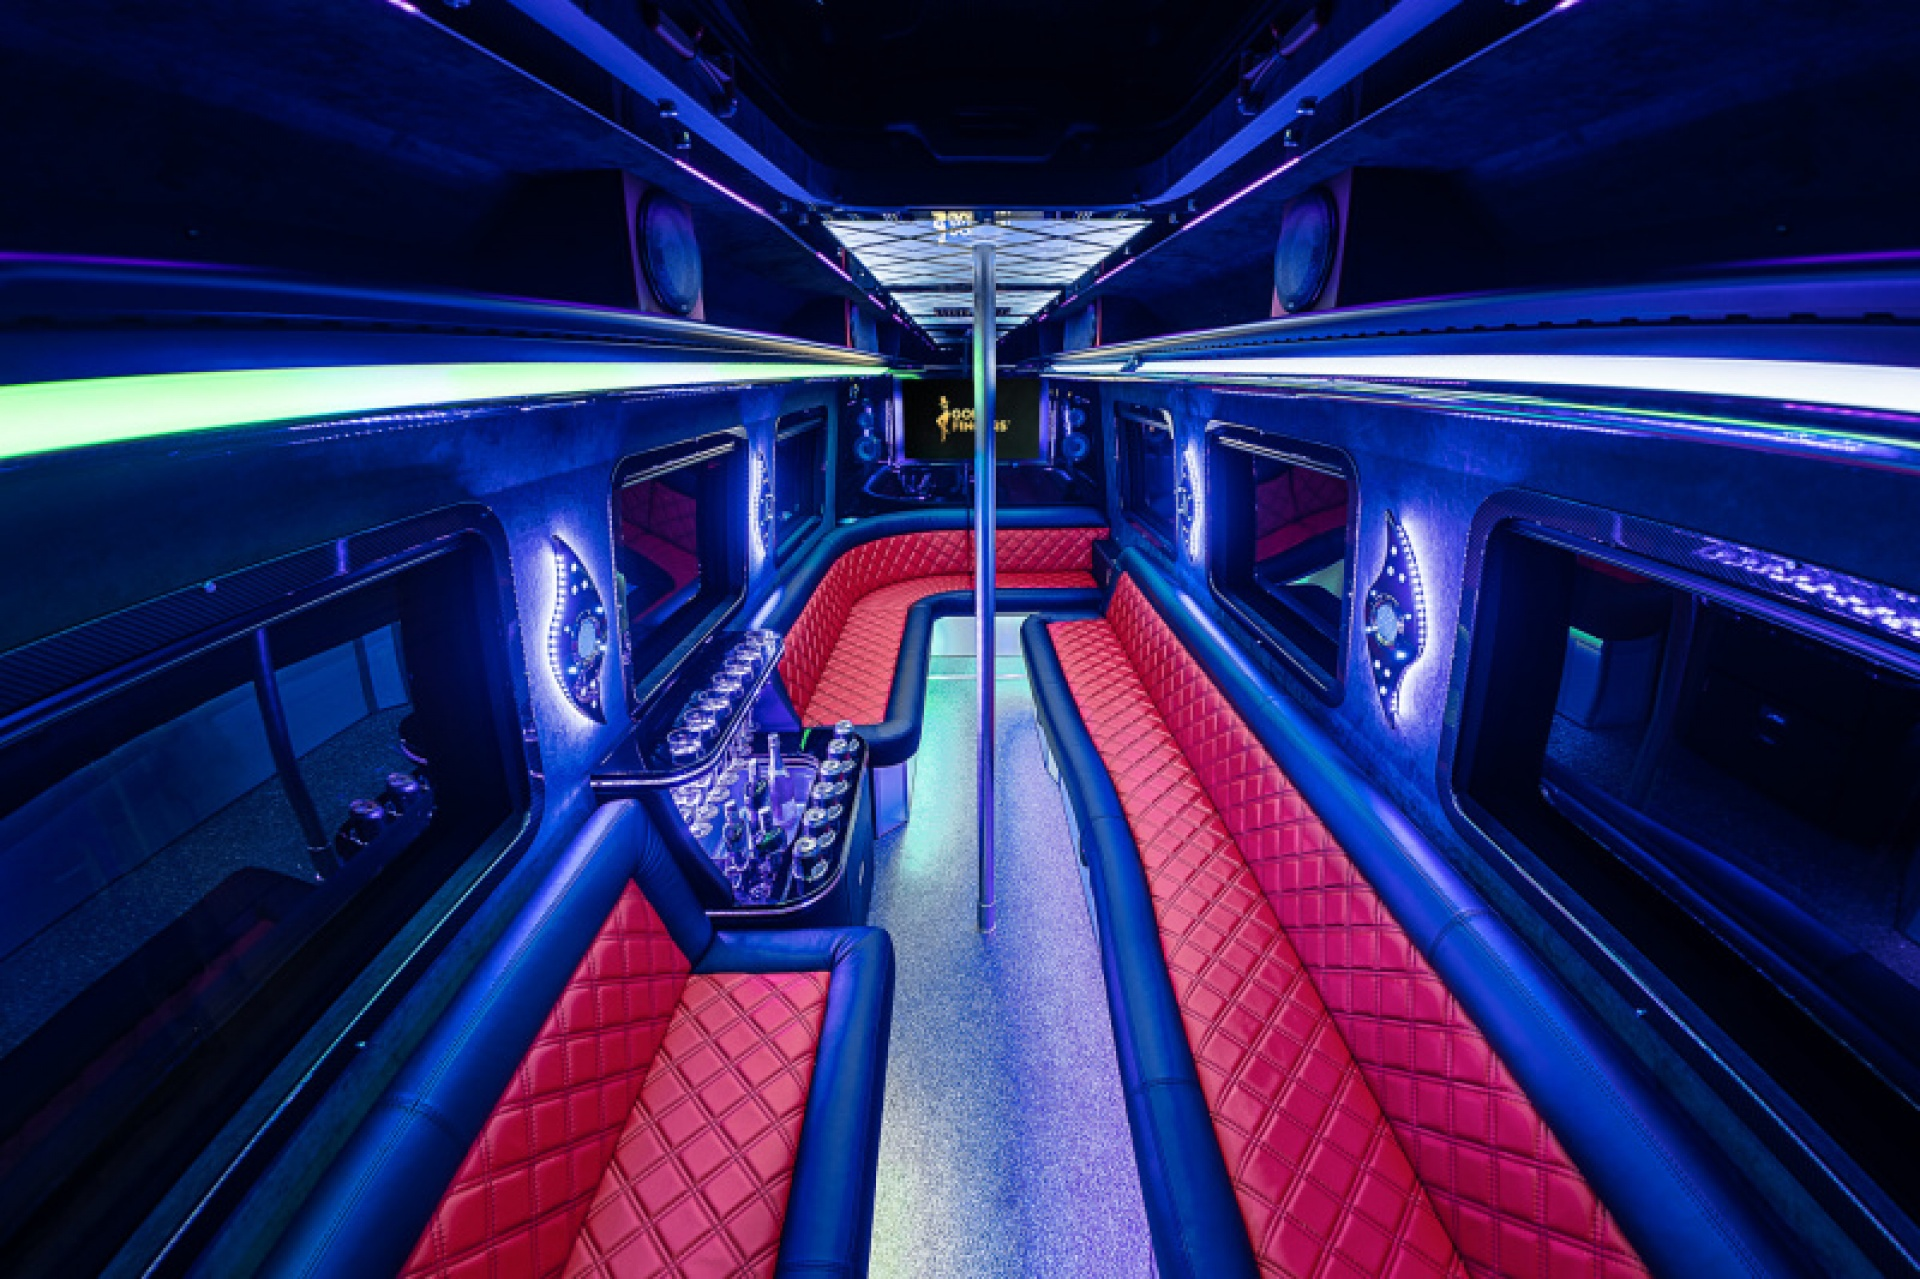 Goldfingers VIP Shuttle interior